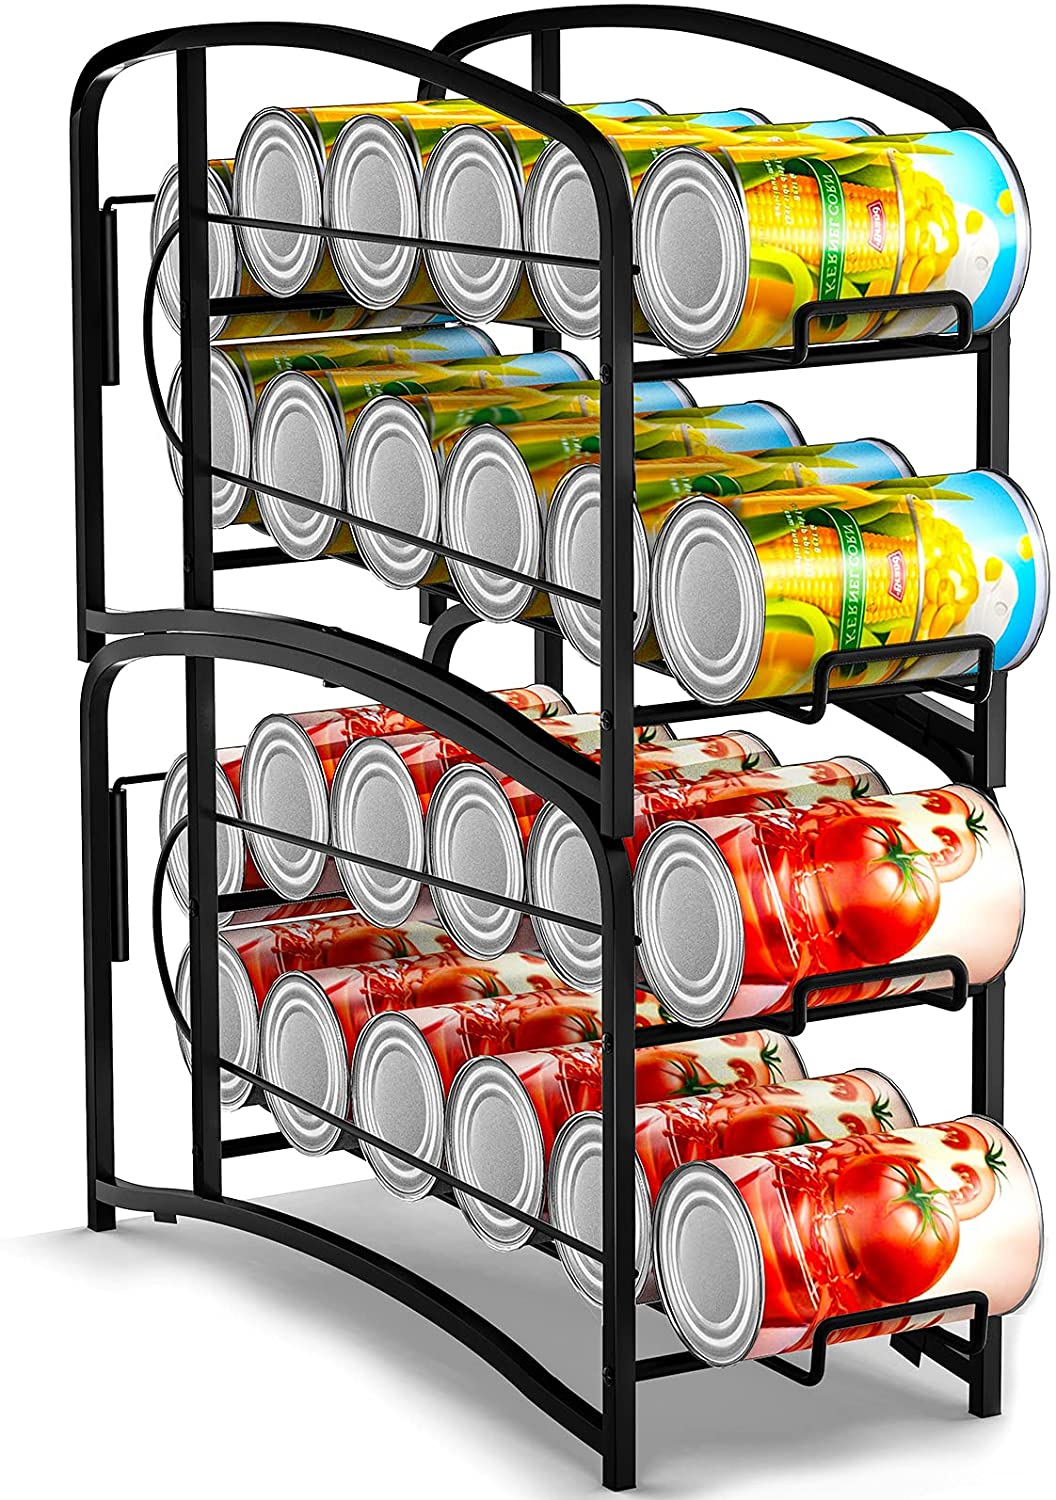 Auledio Stackable Beverage Can Dispenser Rack, Can Storage Organizer Holder for Canned food or Pantry Refrigerator,Black(2 Pack)